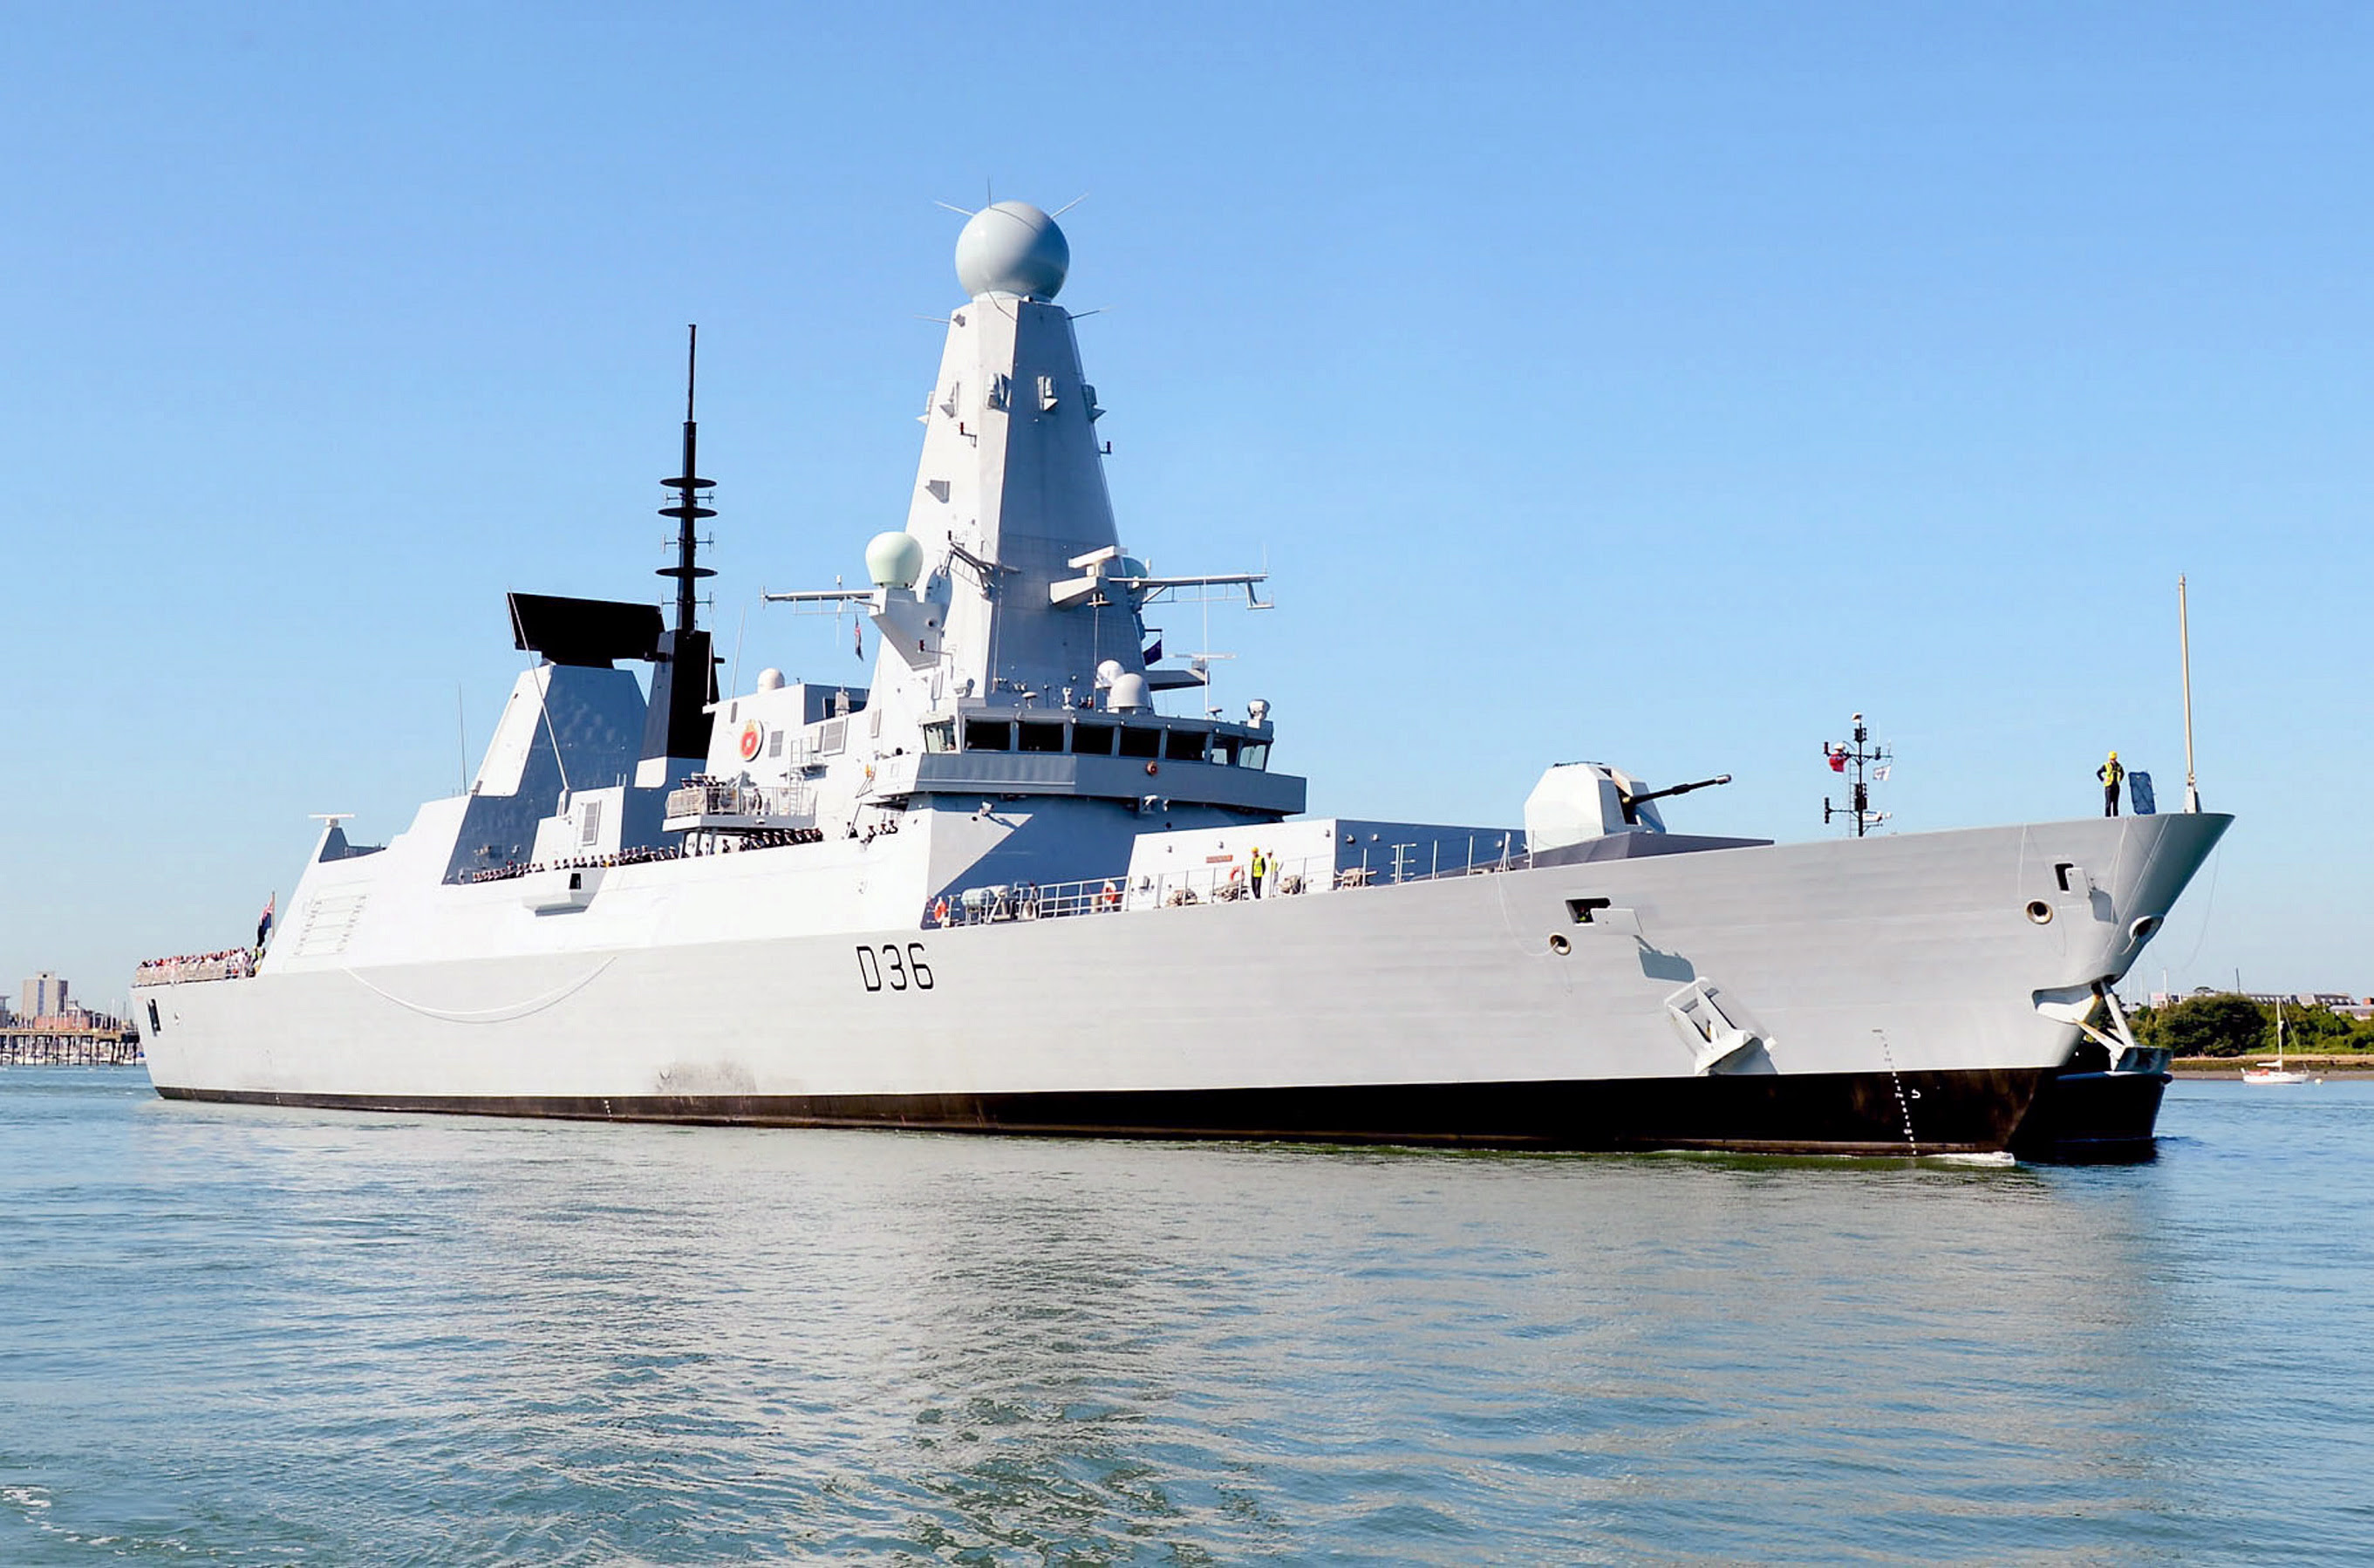 Royal_Navy_Destroyer_HMS_Defender_(D36)